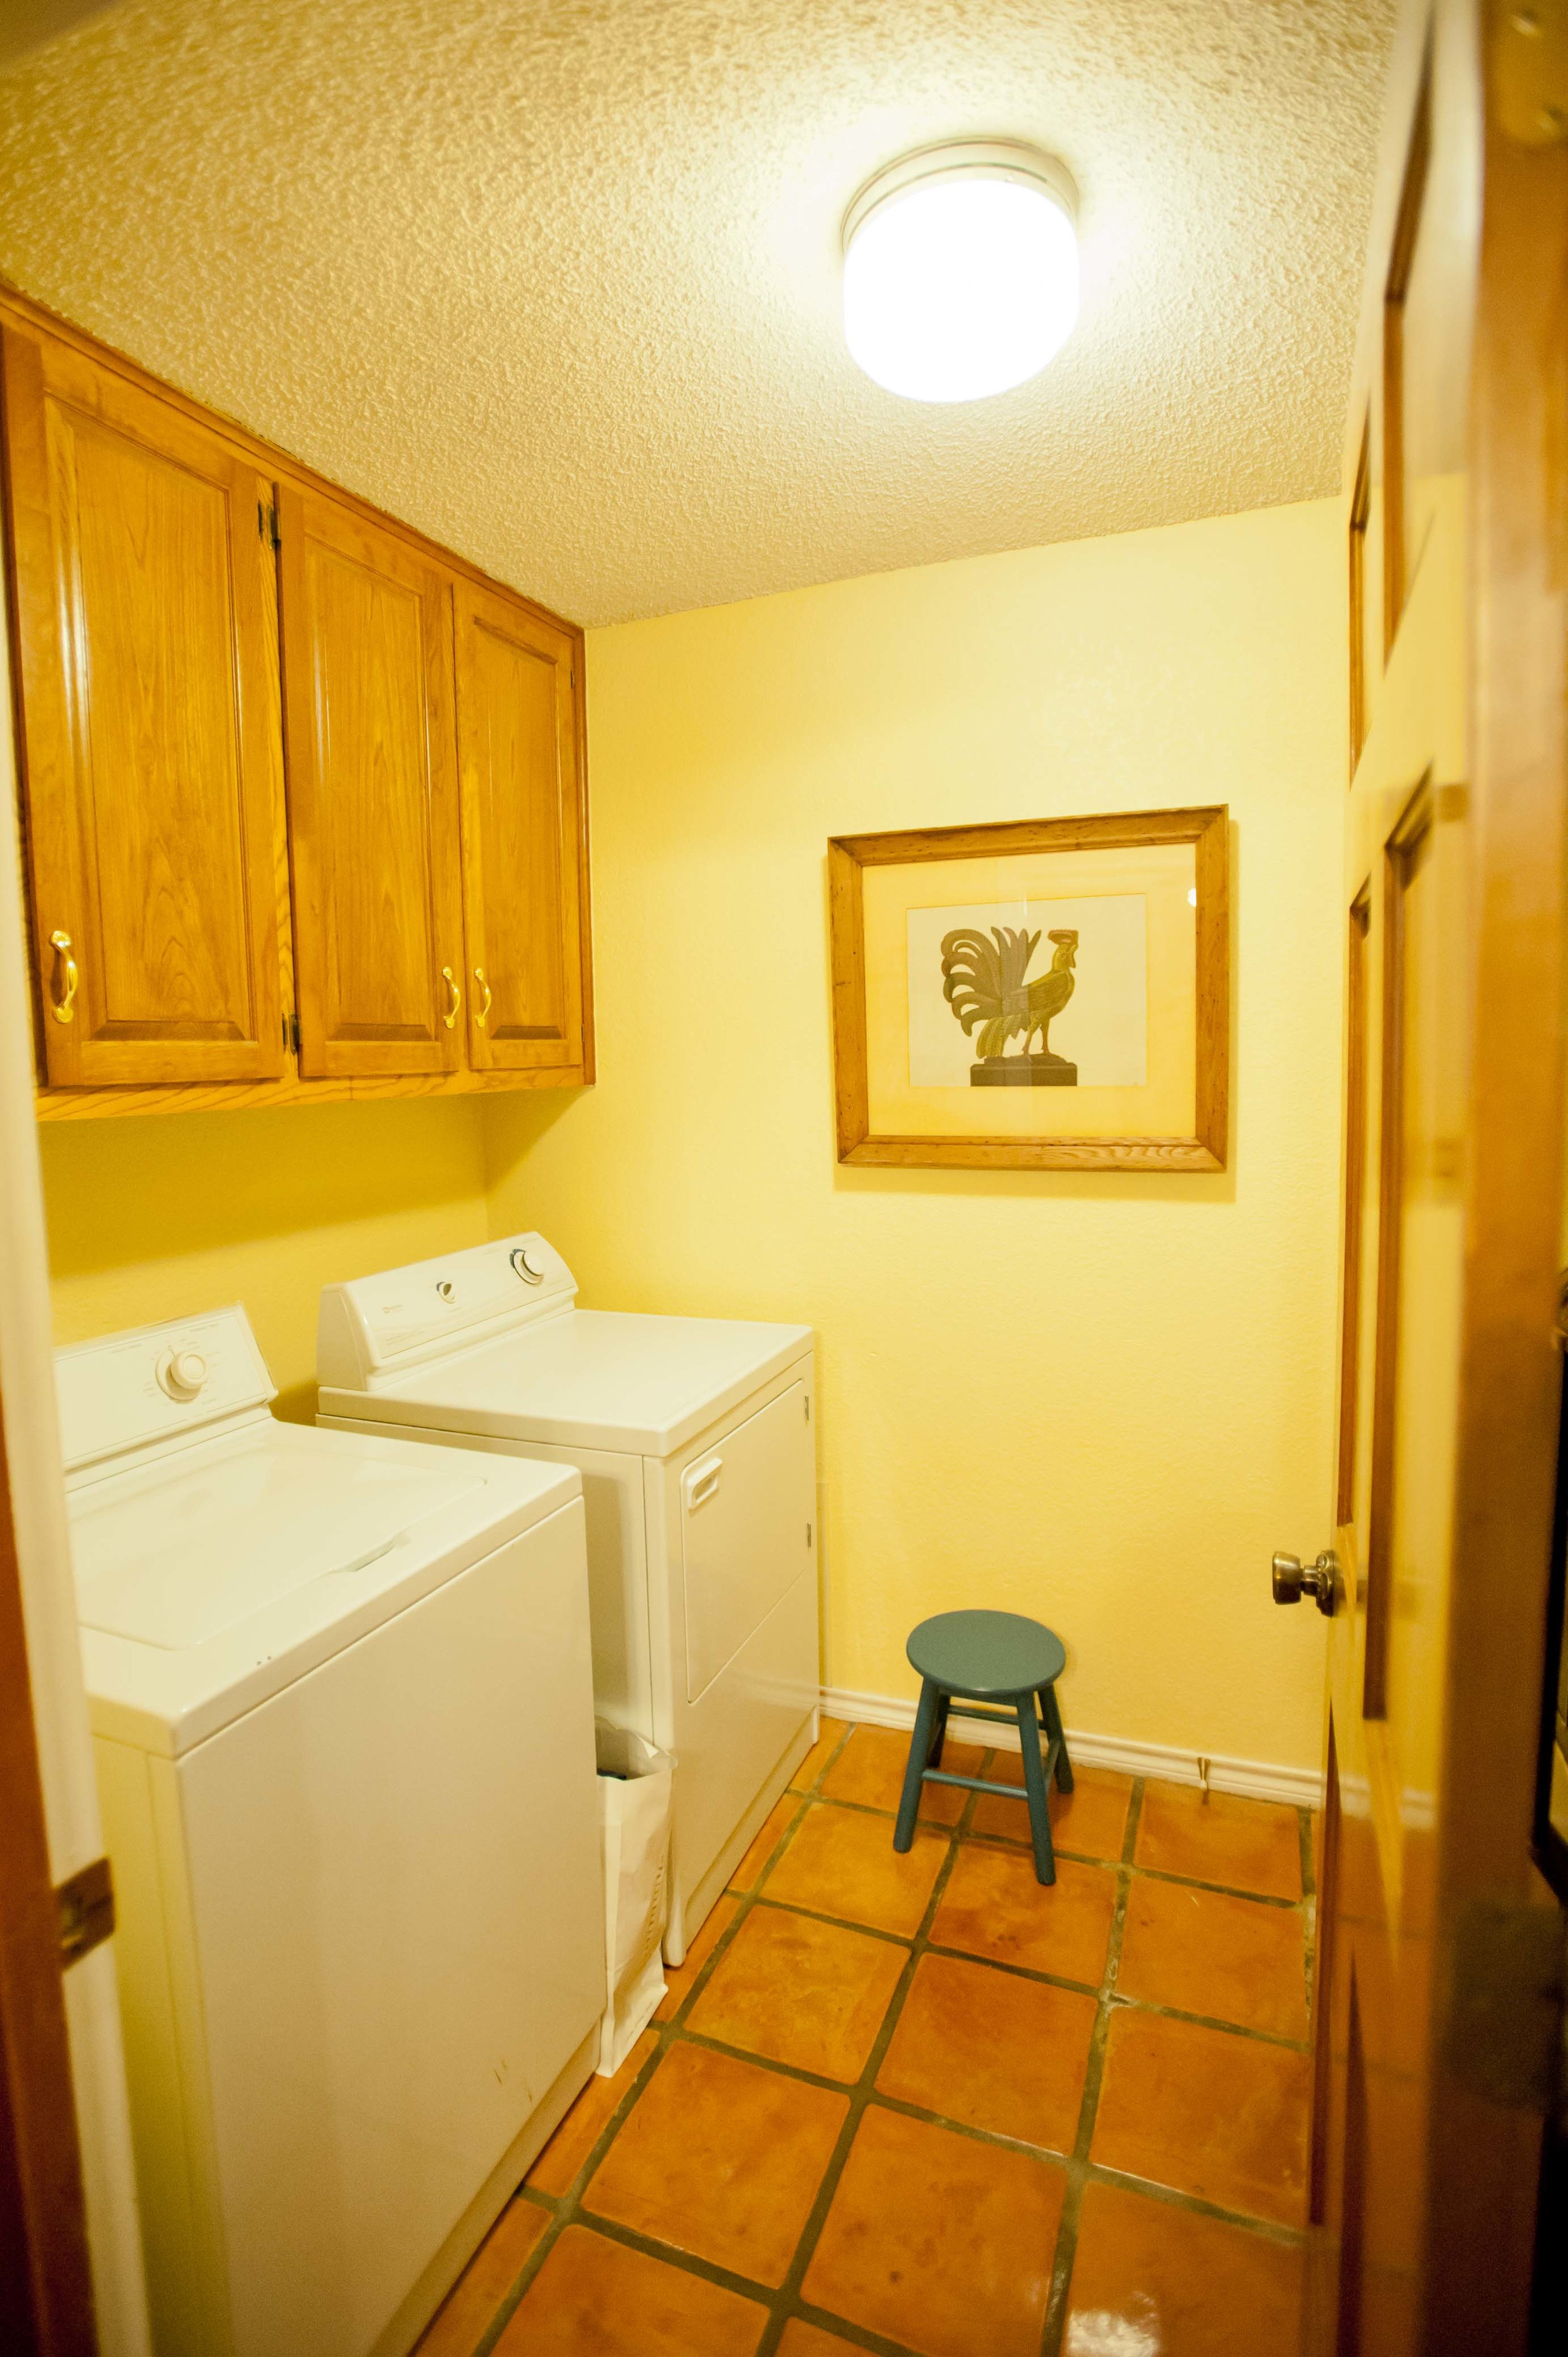 Before: Just the laundry room...no 'before' picture of the water heater closet area.  When we bought this house, I was honestly worried about hating having a laundry room downstairs, off the kitchen and as far away as possible from the home's bedrooms.  I know, I may have been missing the forest for the trees.      Actually, it's been not bad at all (yes, Wes does the lion's share of the laundry because he's awesome) -- having it on the main floor is kind of nice.  Who knew.